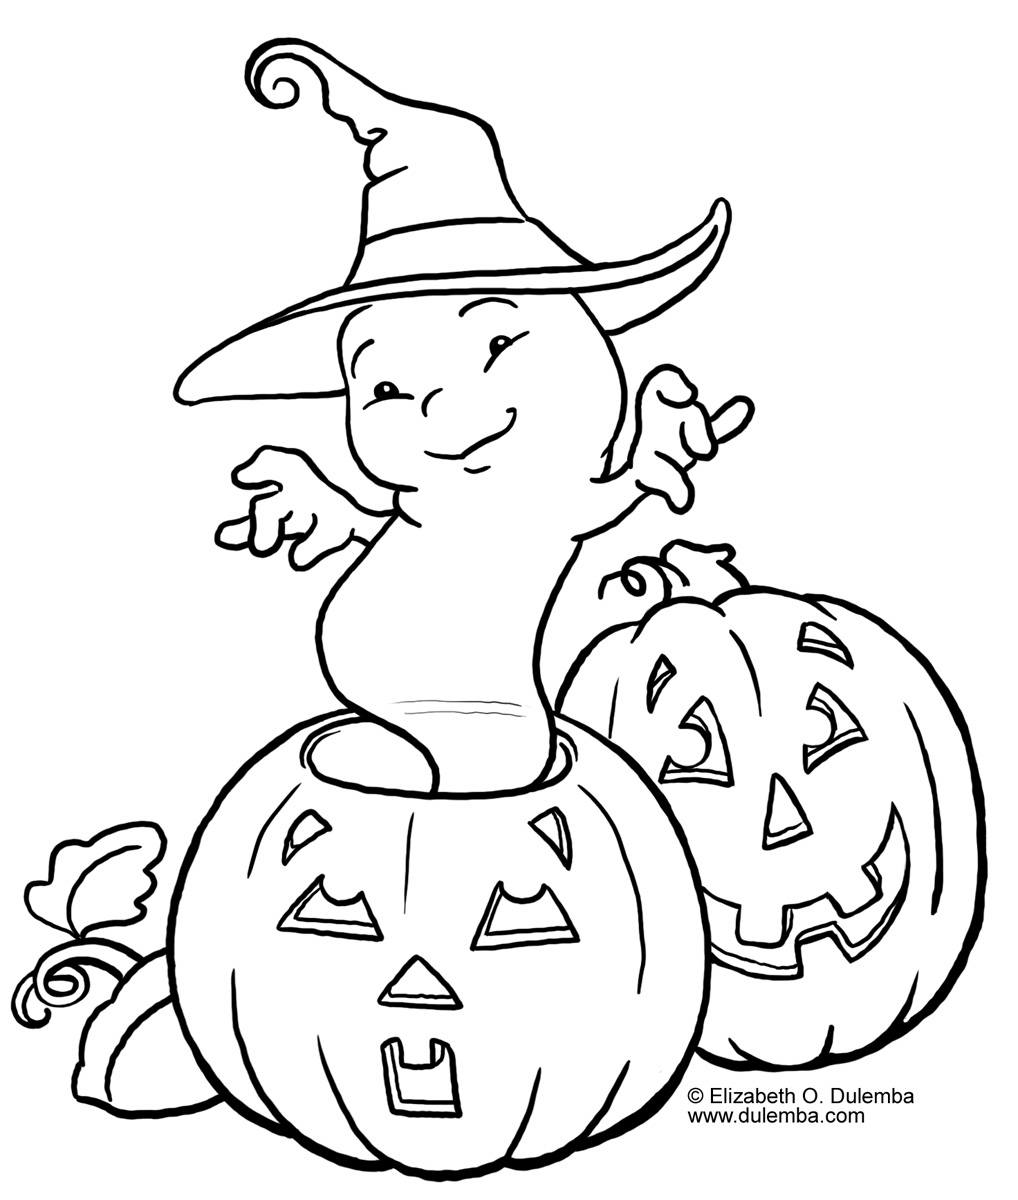 Halloween Pumpkin Coloring Pages Printables Pumpkin 167 Objects Printable Coloring Pages